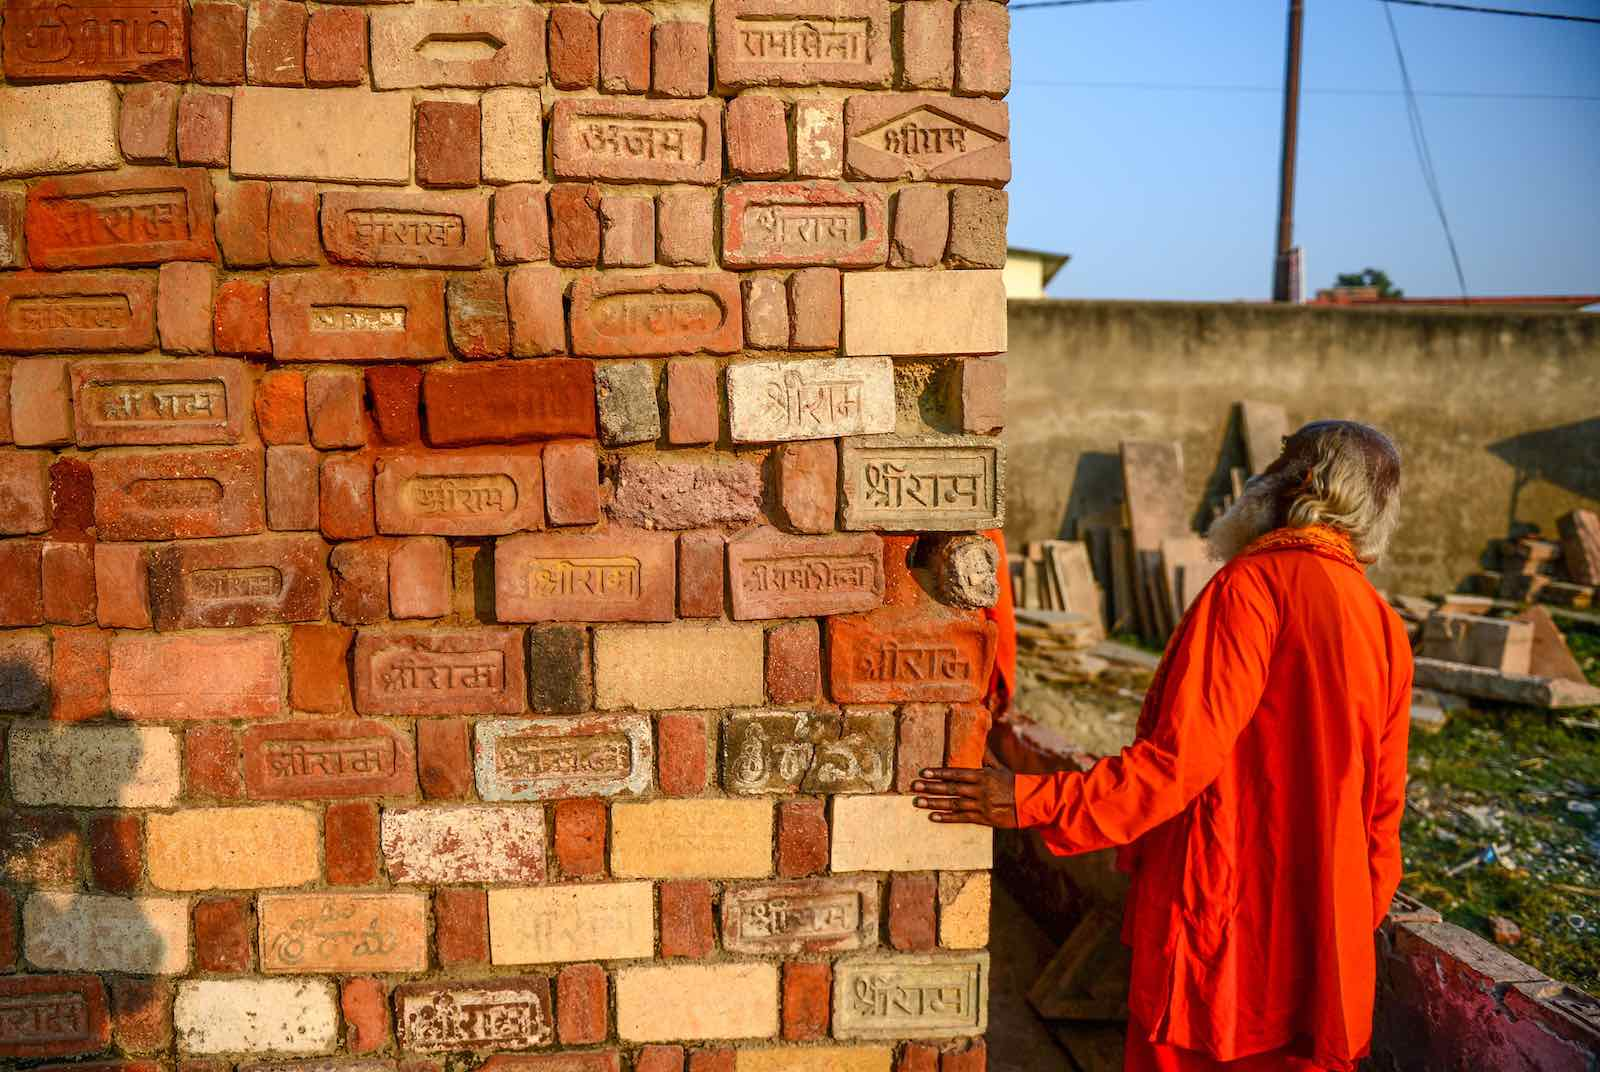 A Sadhu with bricks for the proposed Rama temple in Ayodhya following the Supreme Court verdict on the disputed religious site (Photo: Sanjay Kanojia/AFP/Getty Images)